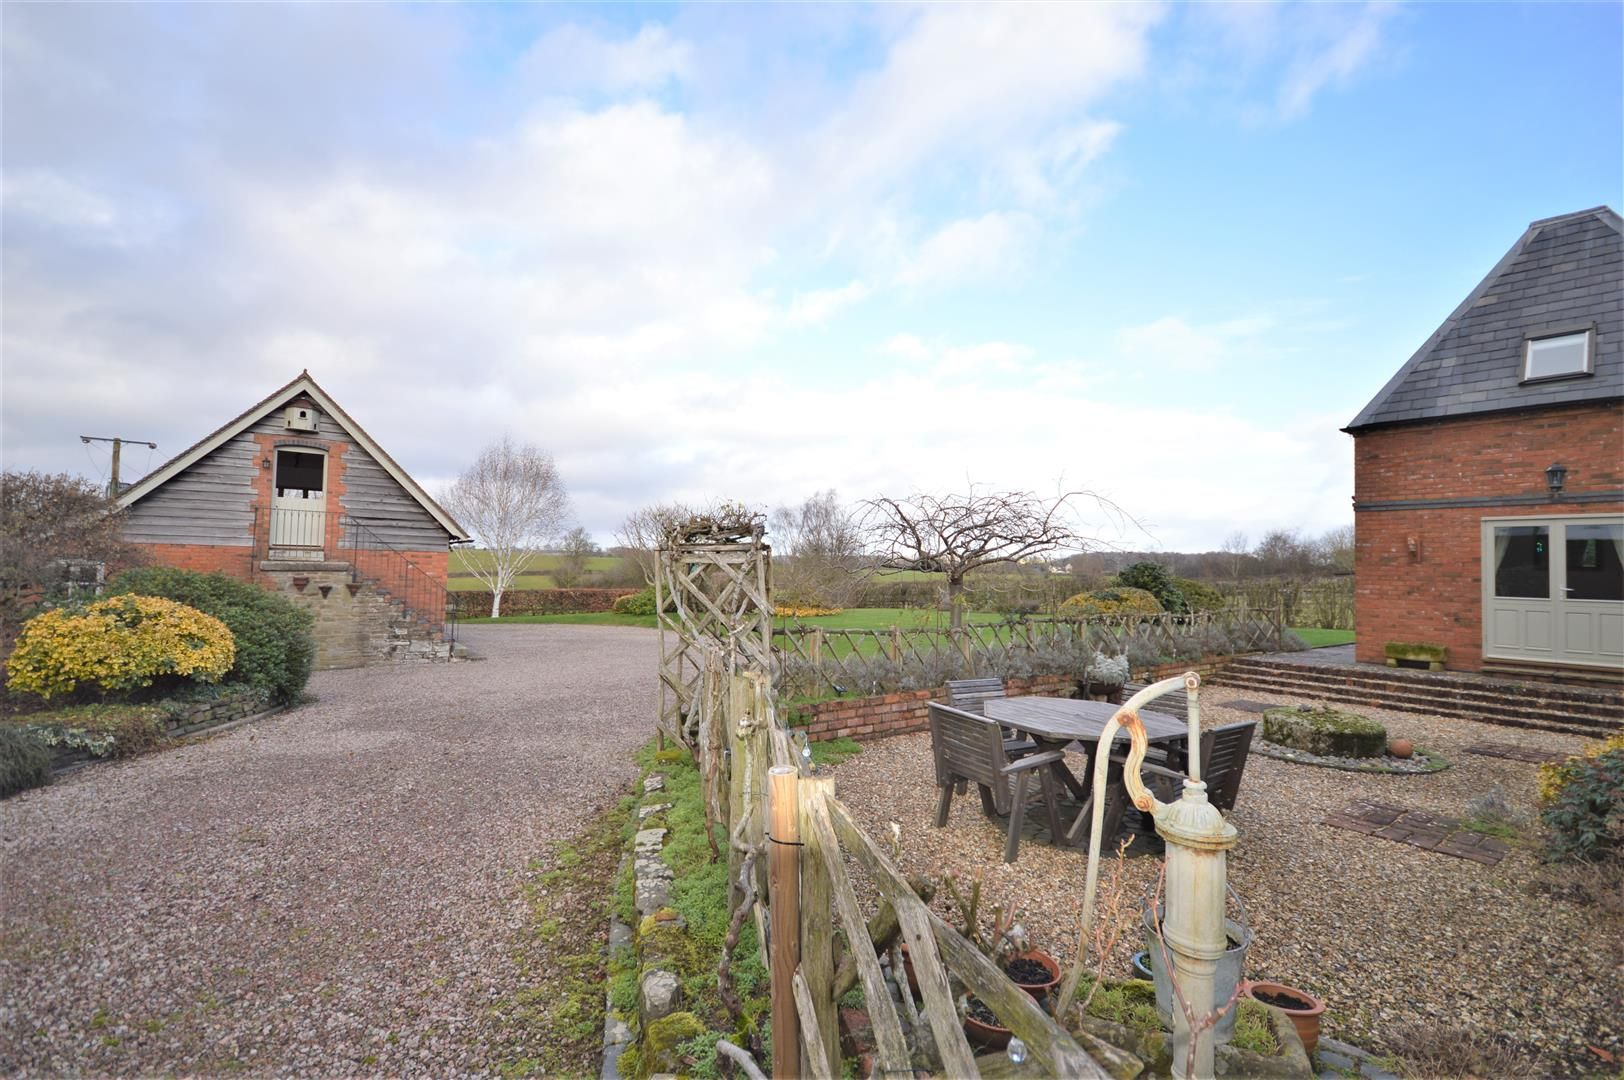 4 bed detached for sale in Marden  - Property Image 10